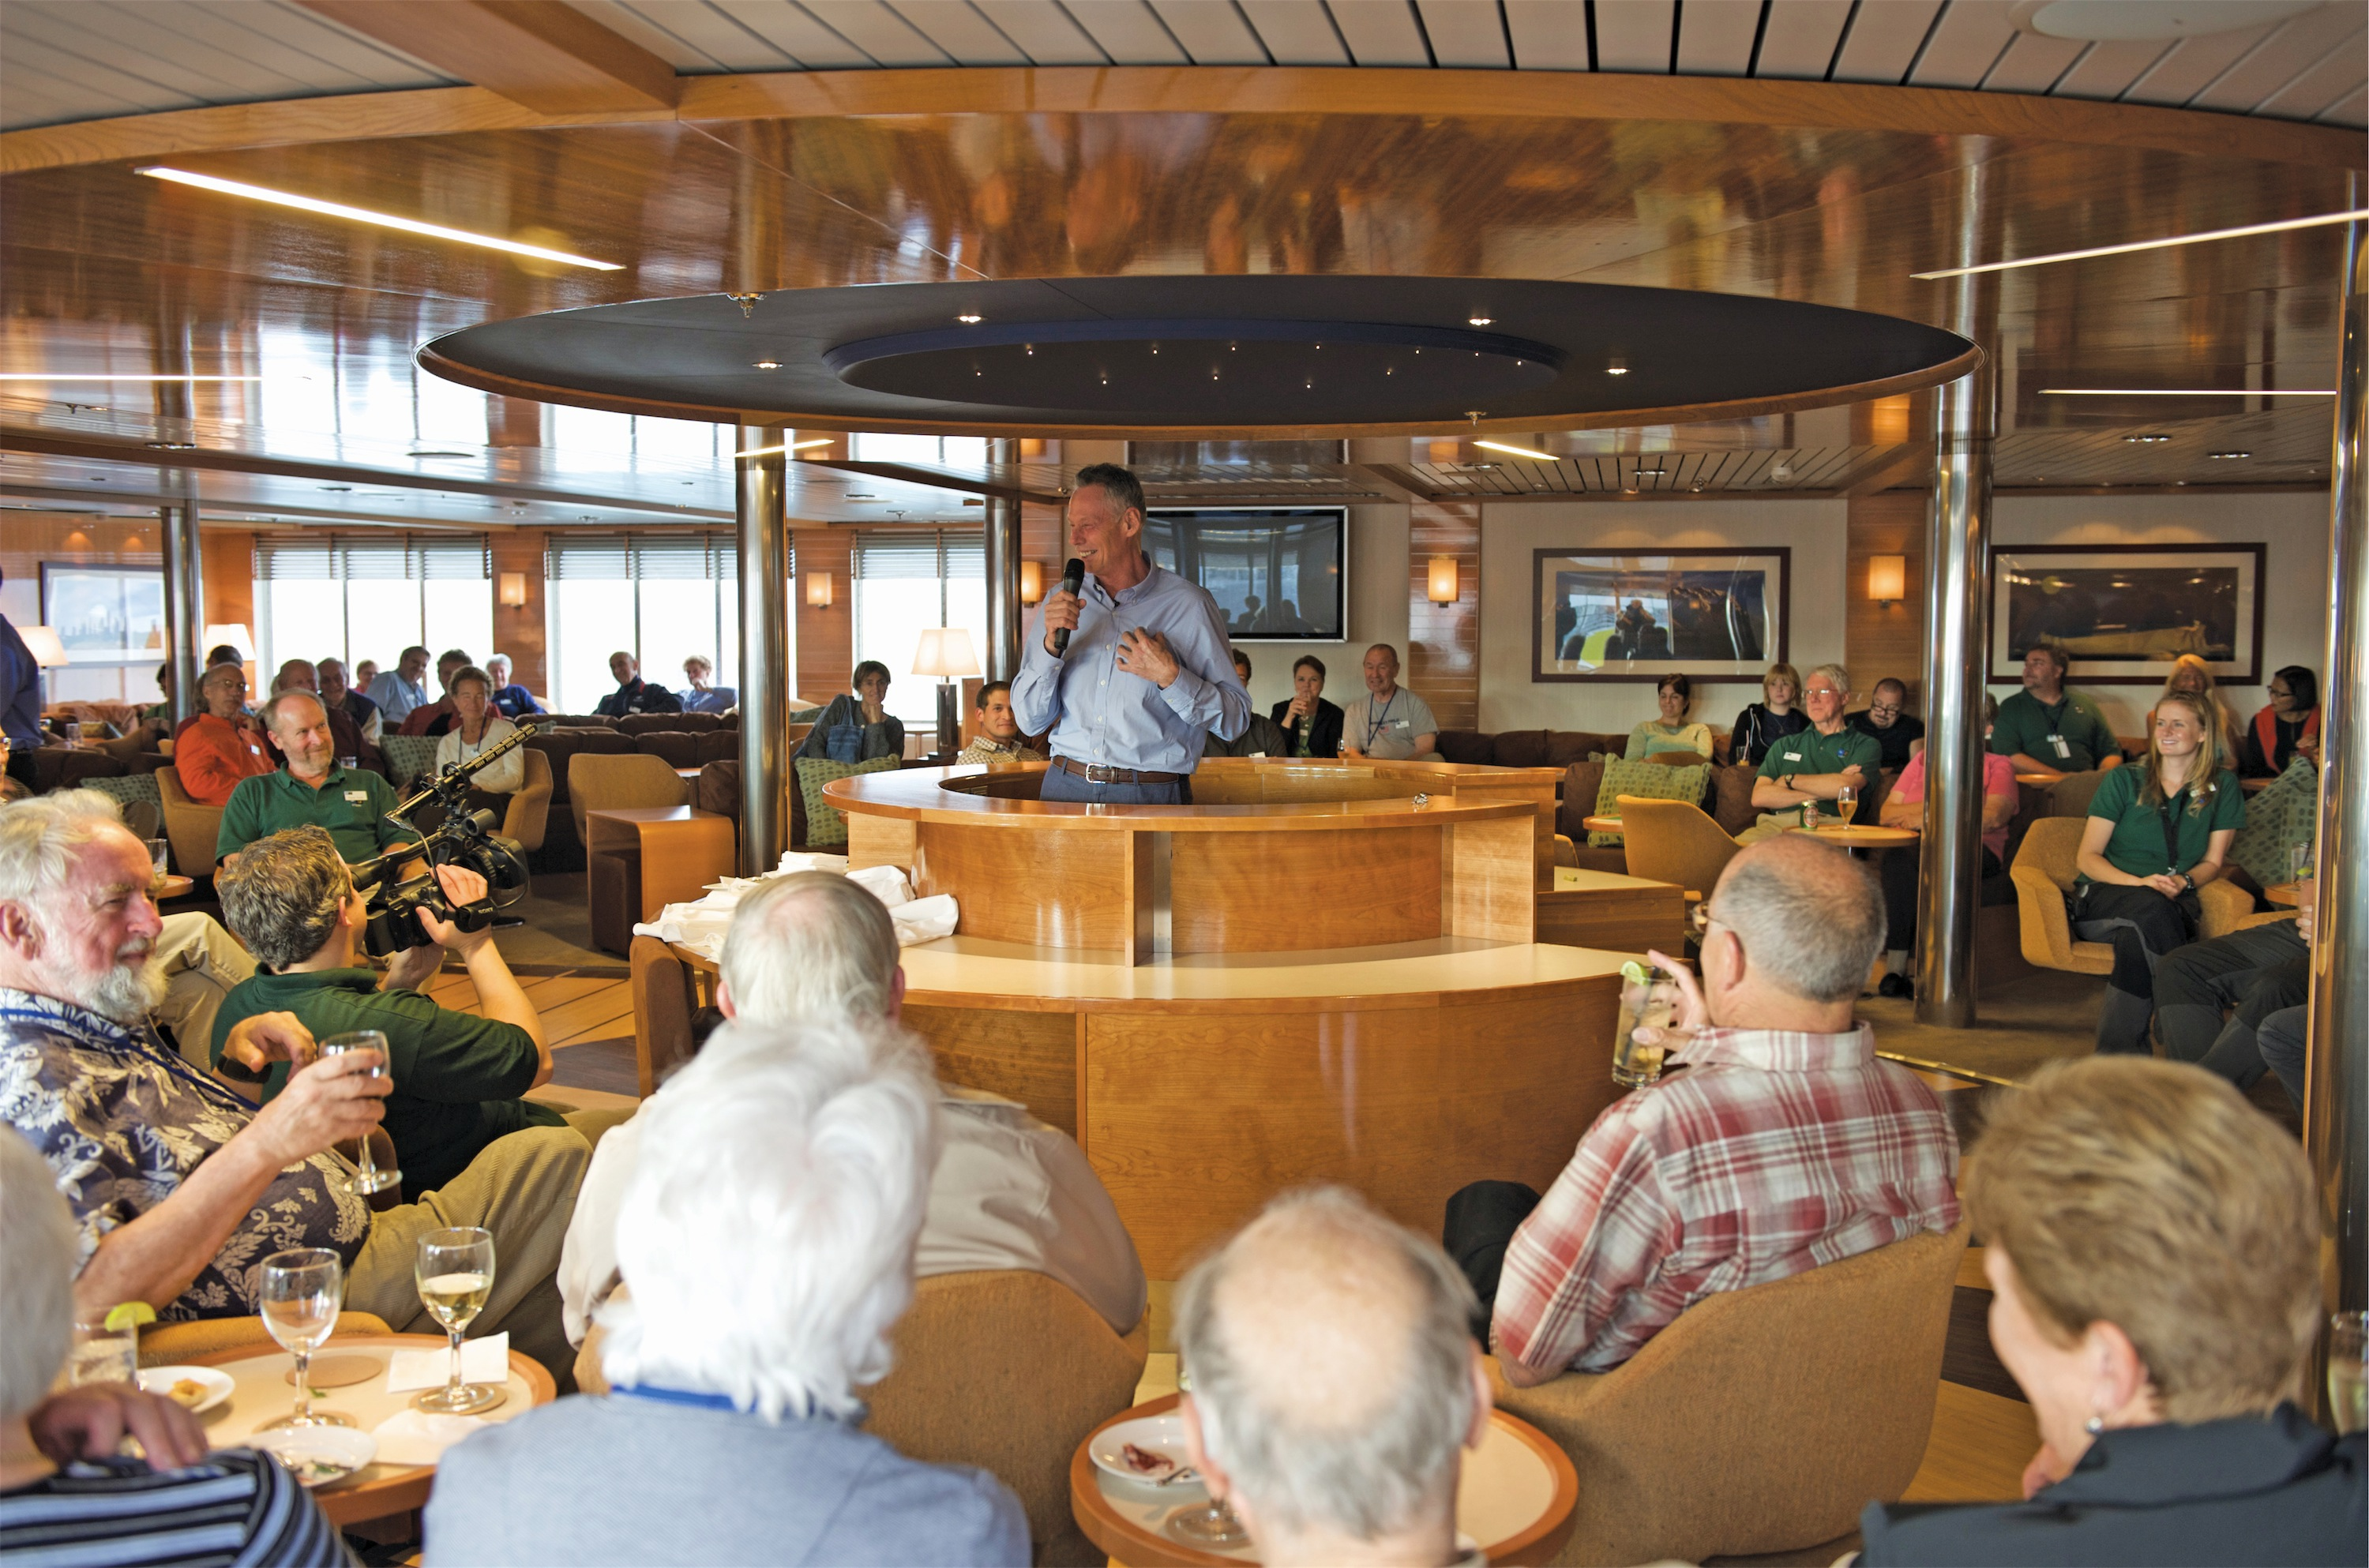 Lindblad Expeditions National Geographic Explorer Interior Lounge Recap.jpg